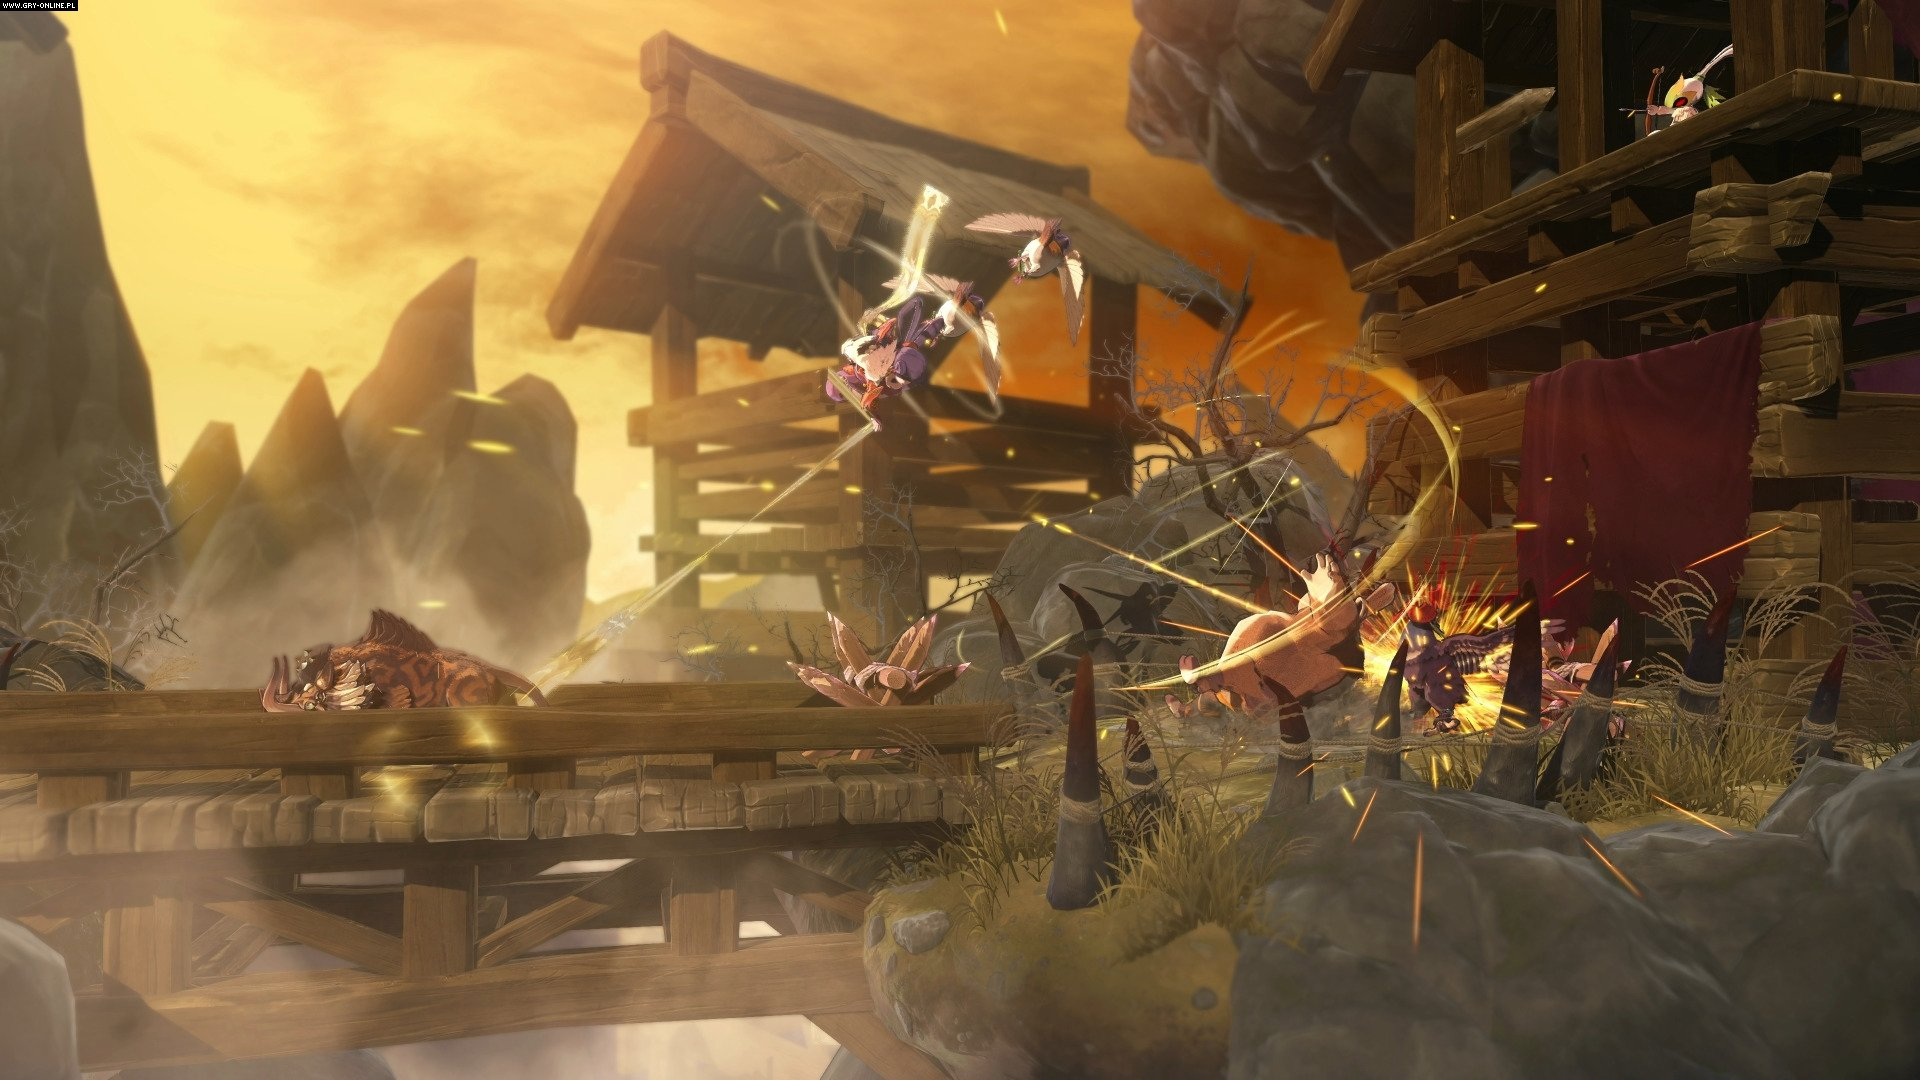 Sakuna: Of Rice and Ruin PC, PS4 Gry Screen 2/28, Edelweiss, XSEED Games